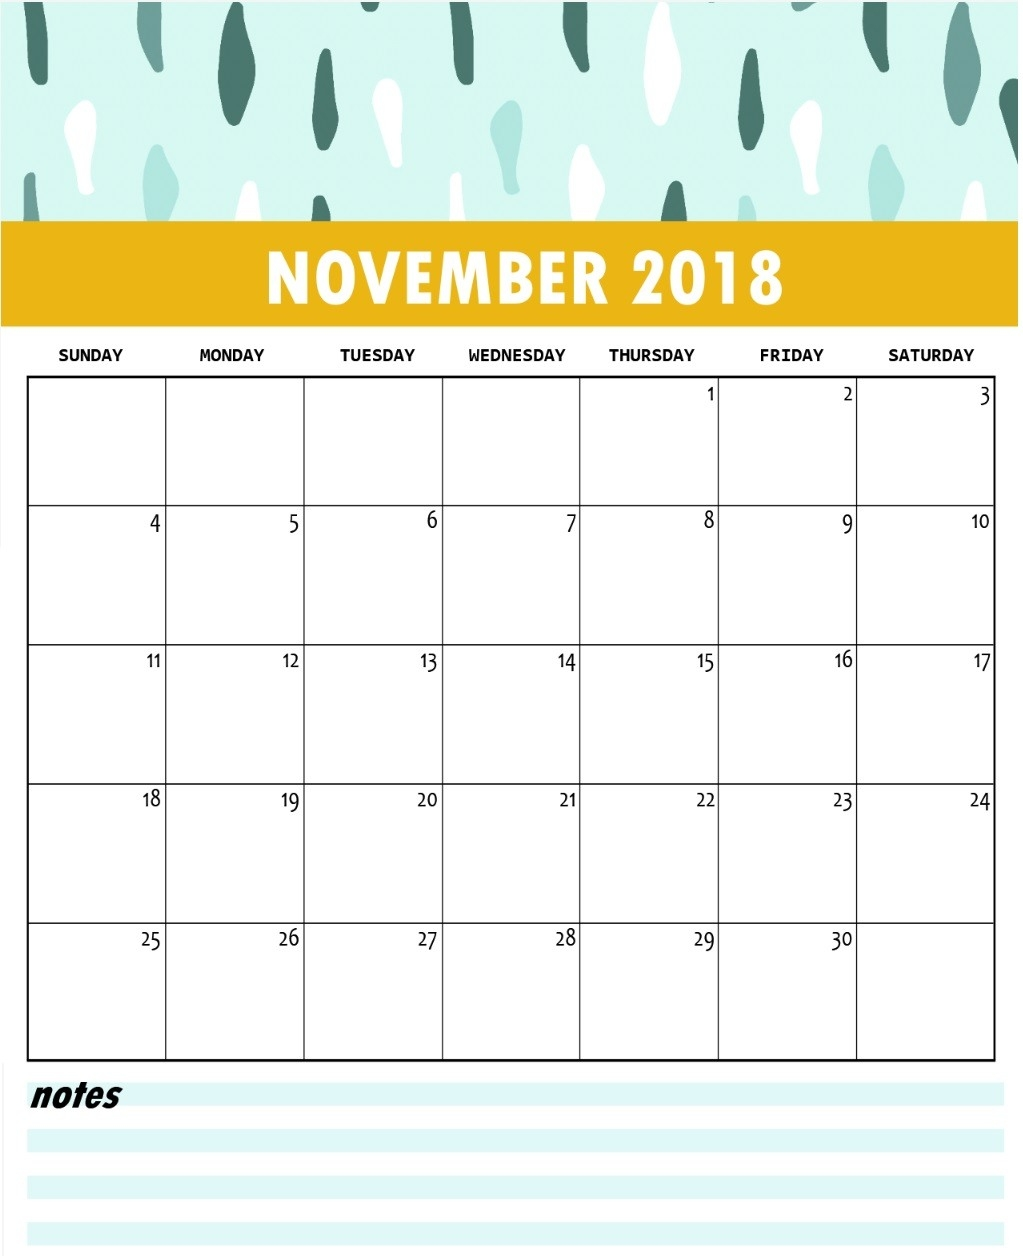 Cute Calendar For November 2018 With Notes